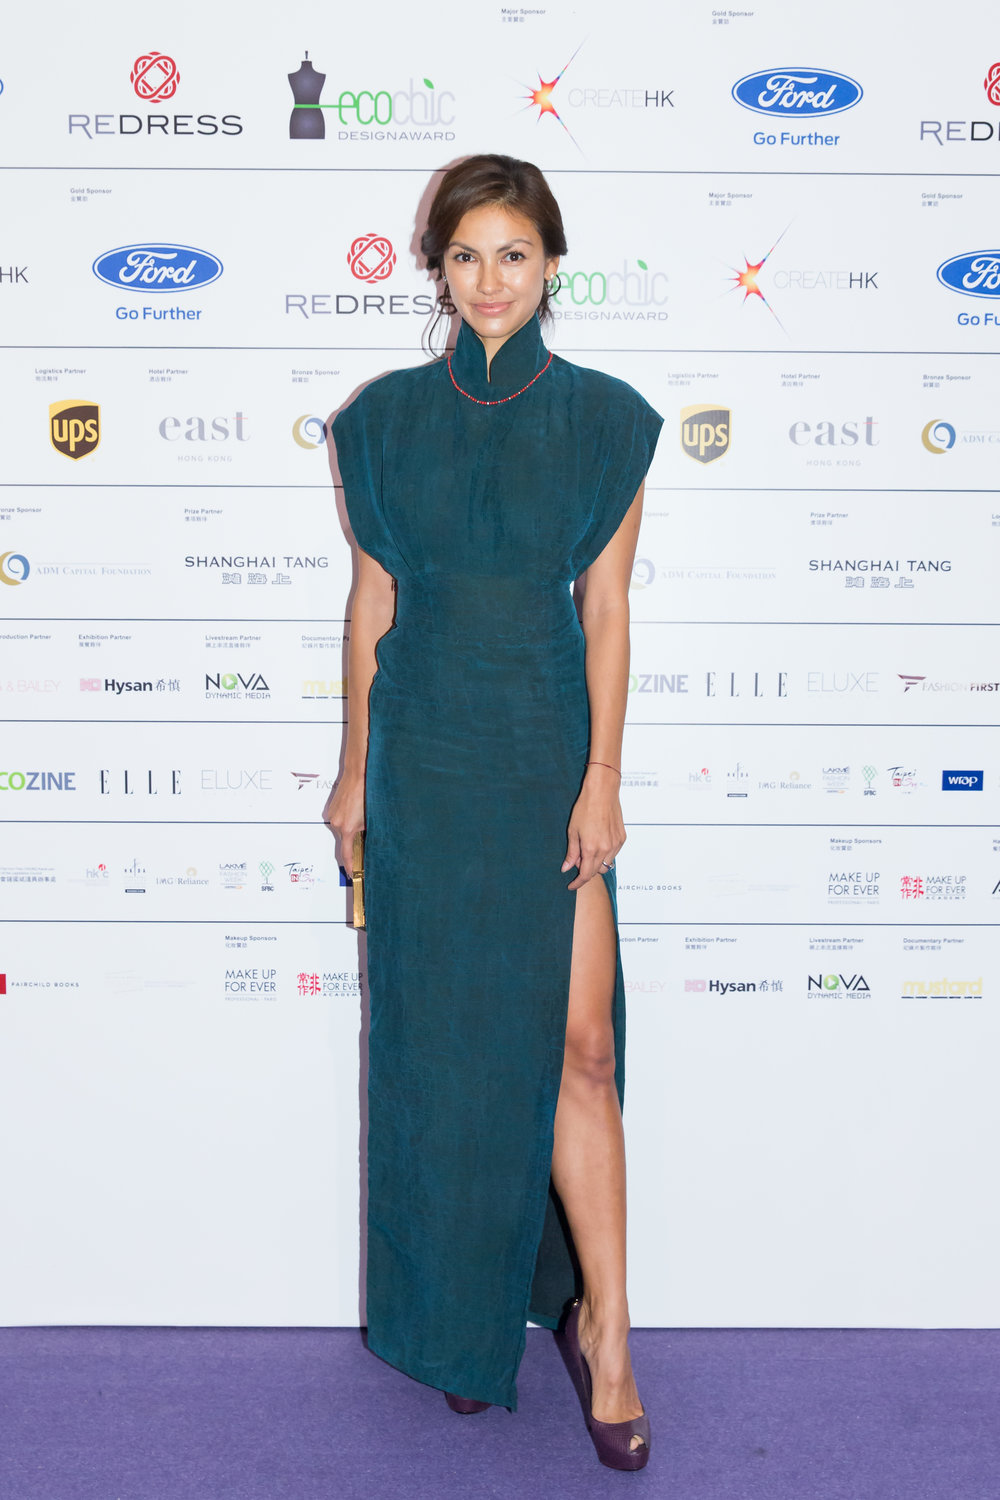 Hong Kong supermodel Rosemary Vandenbroucke wears Cher Chan to attend the EcoChic Design Award 2015/16 Grand Final